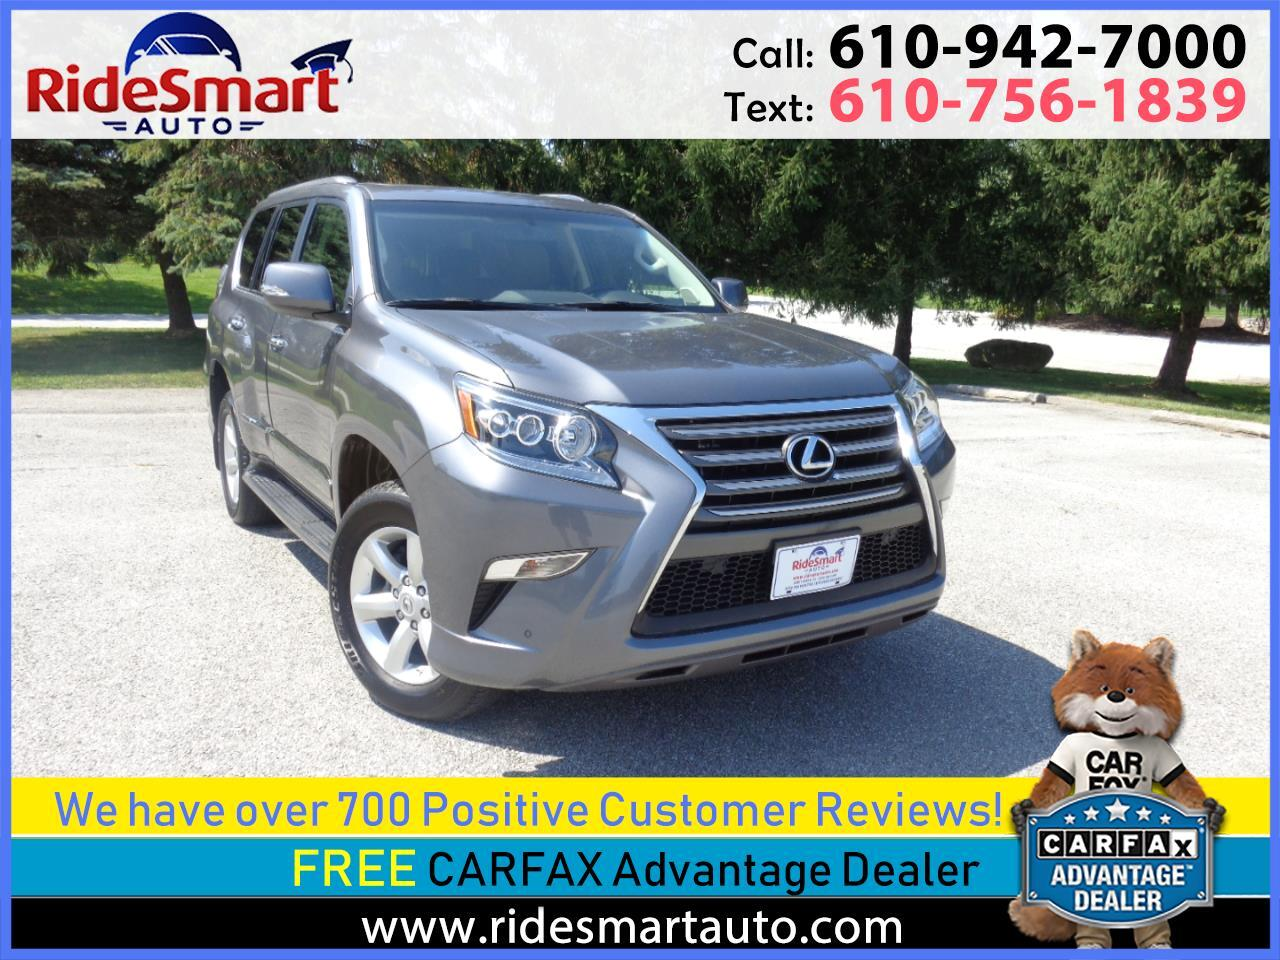 2017 Lexus GX 460 Navigation-Sunroof-3rd Row Seat